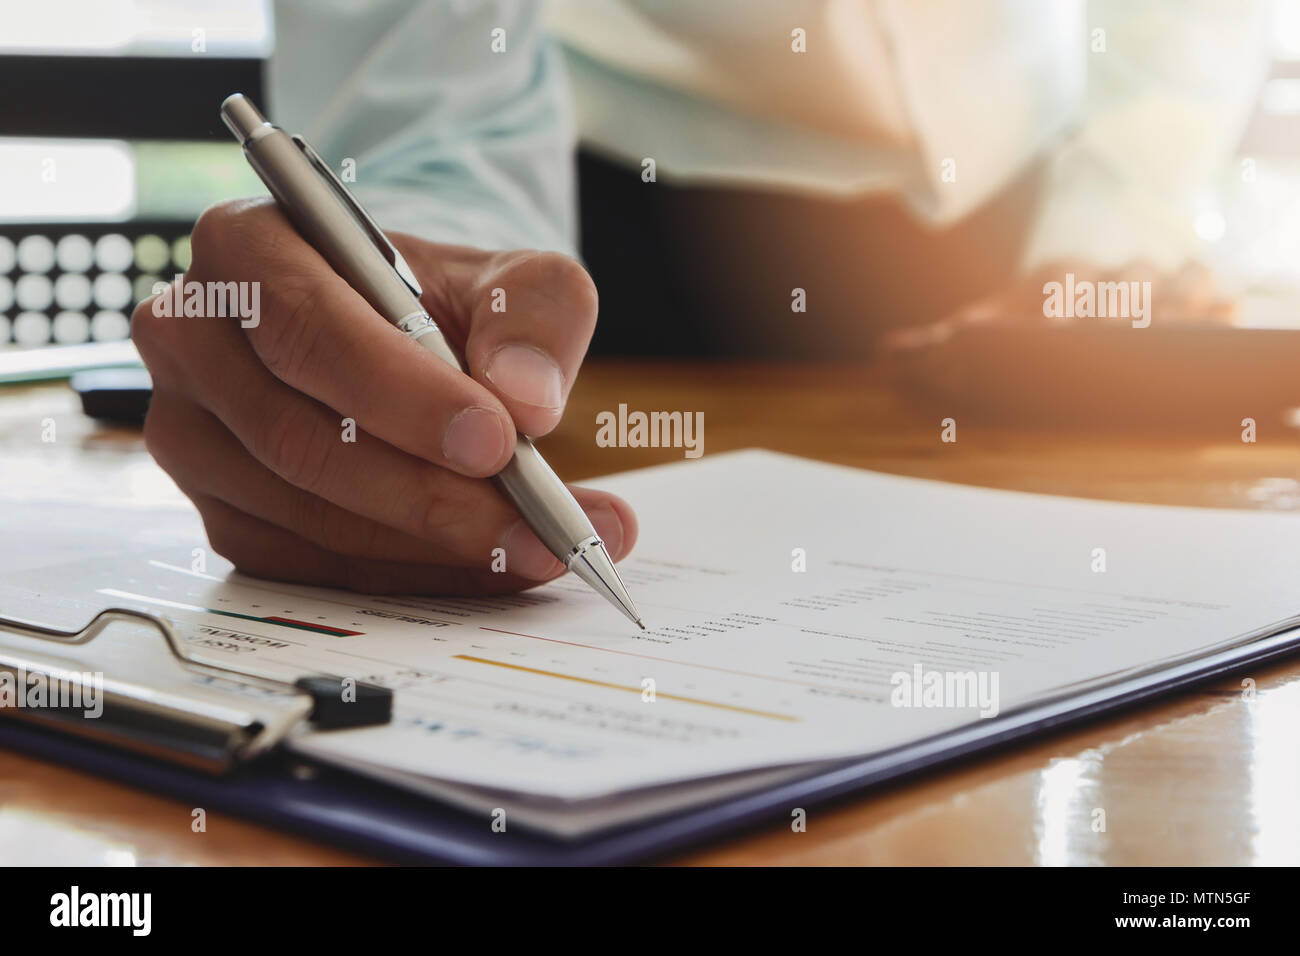 Businessman writing or pointing on report paper. Business strategy concept. - Stock Image